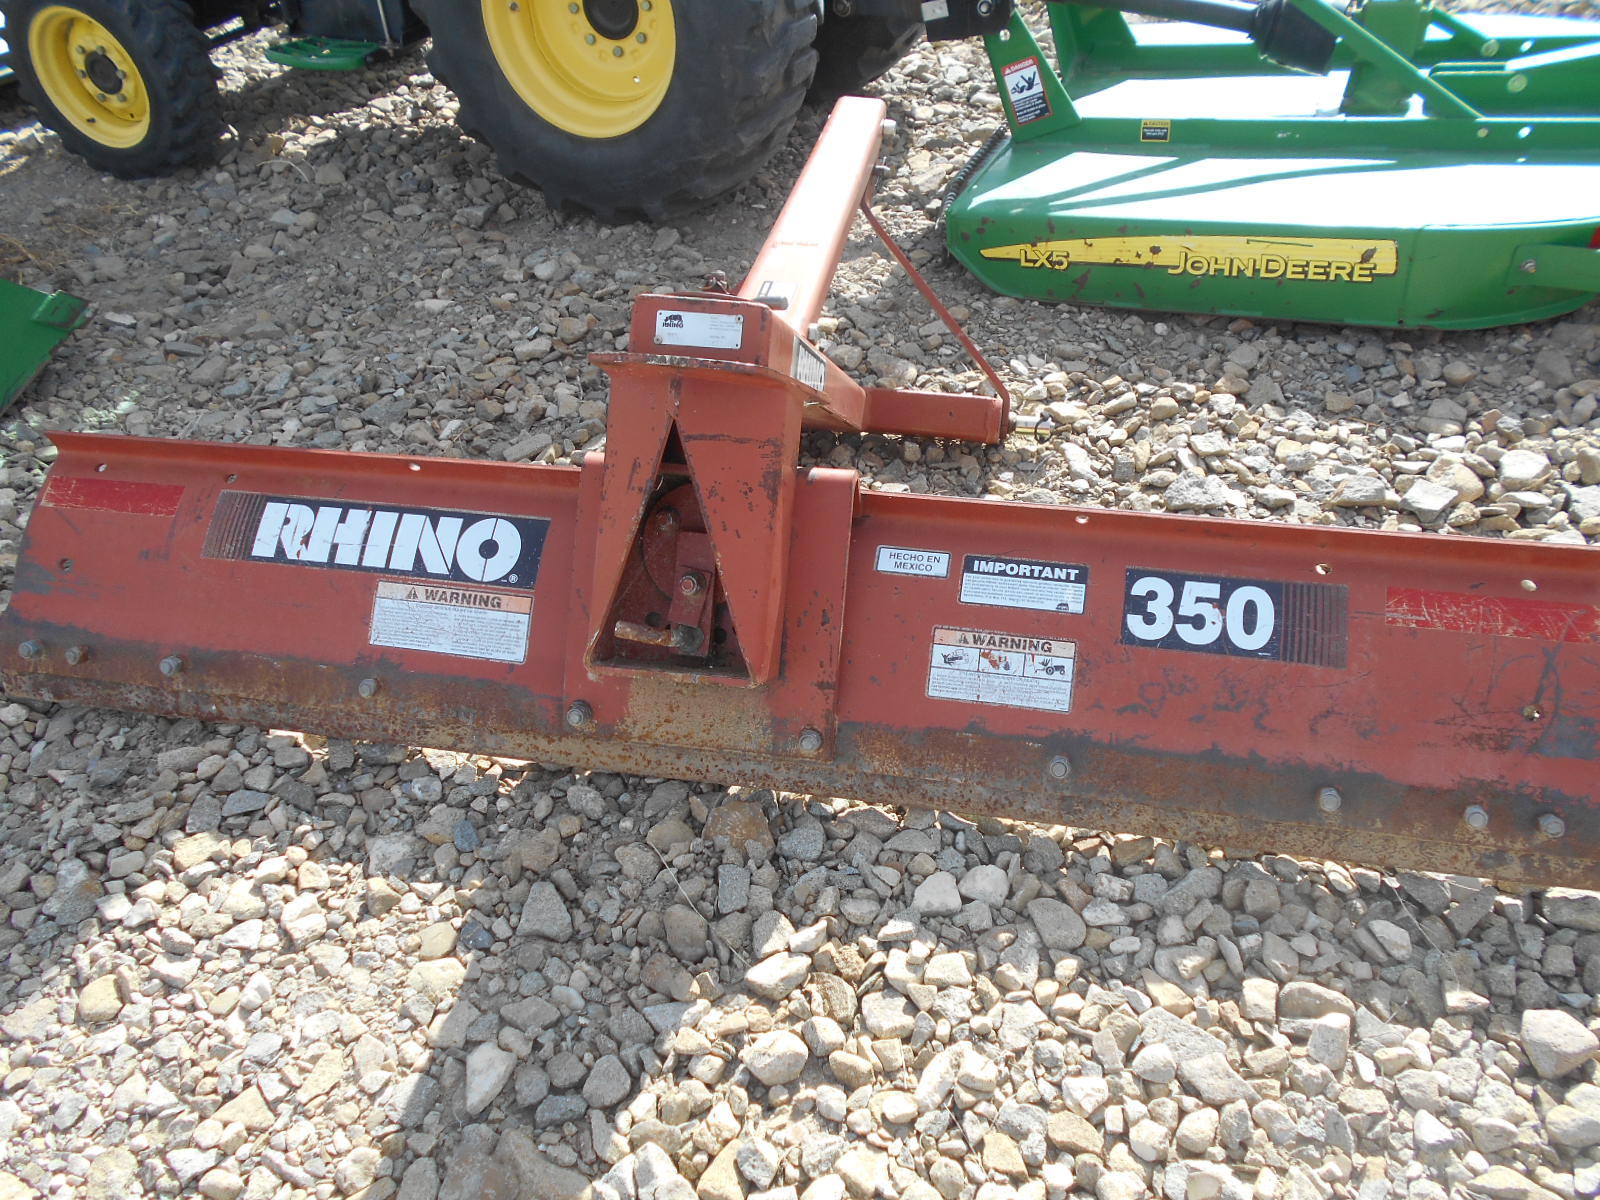 USED JD 3350 TRACTOR AND EQUIP 010 - D & D Sales   Trailer